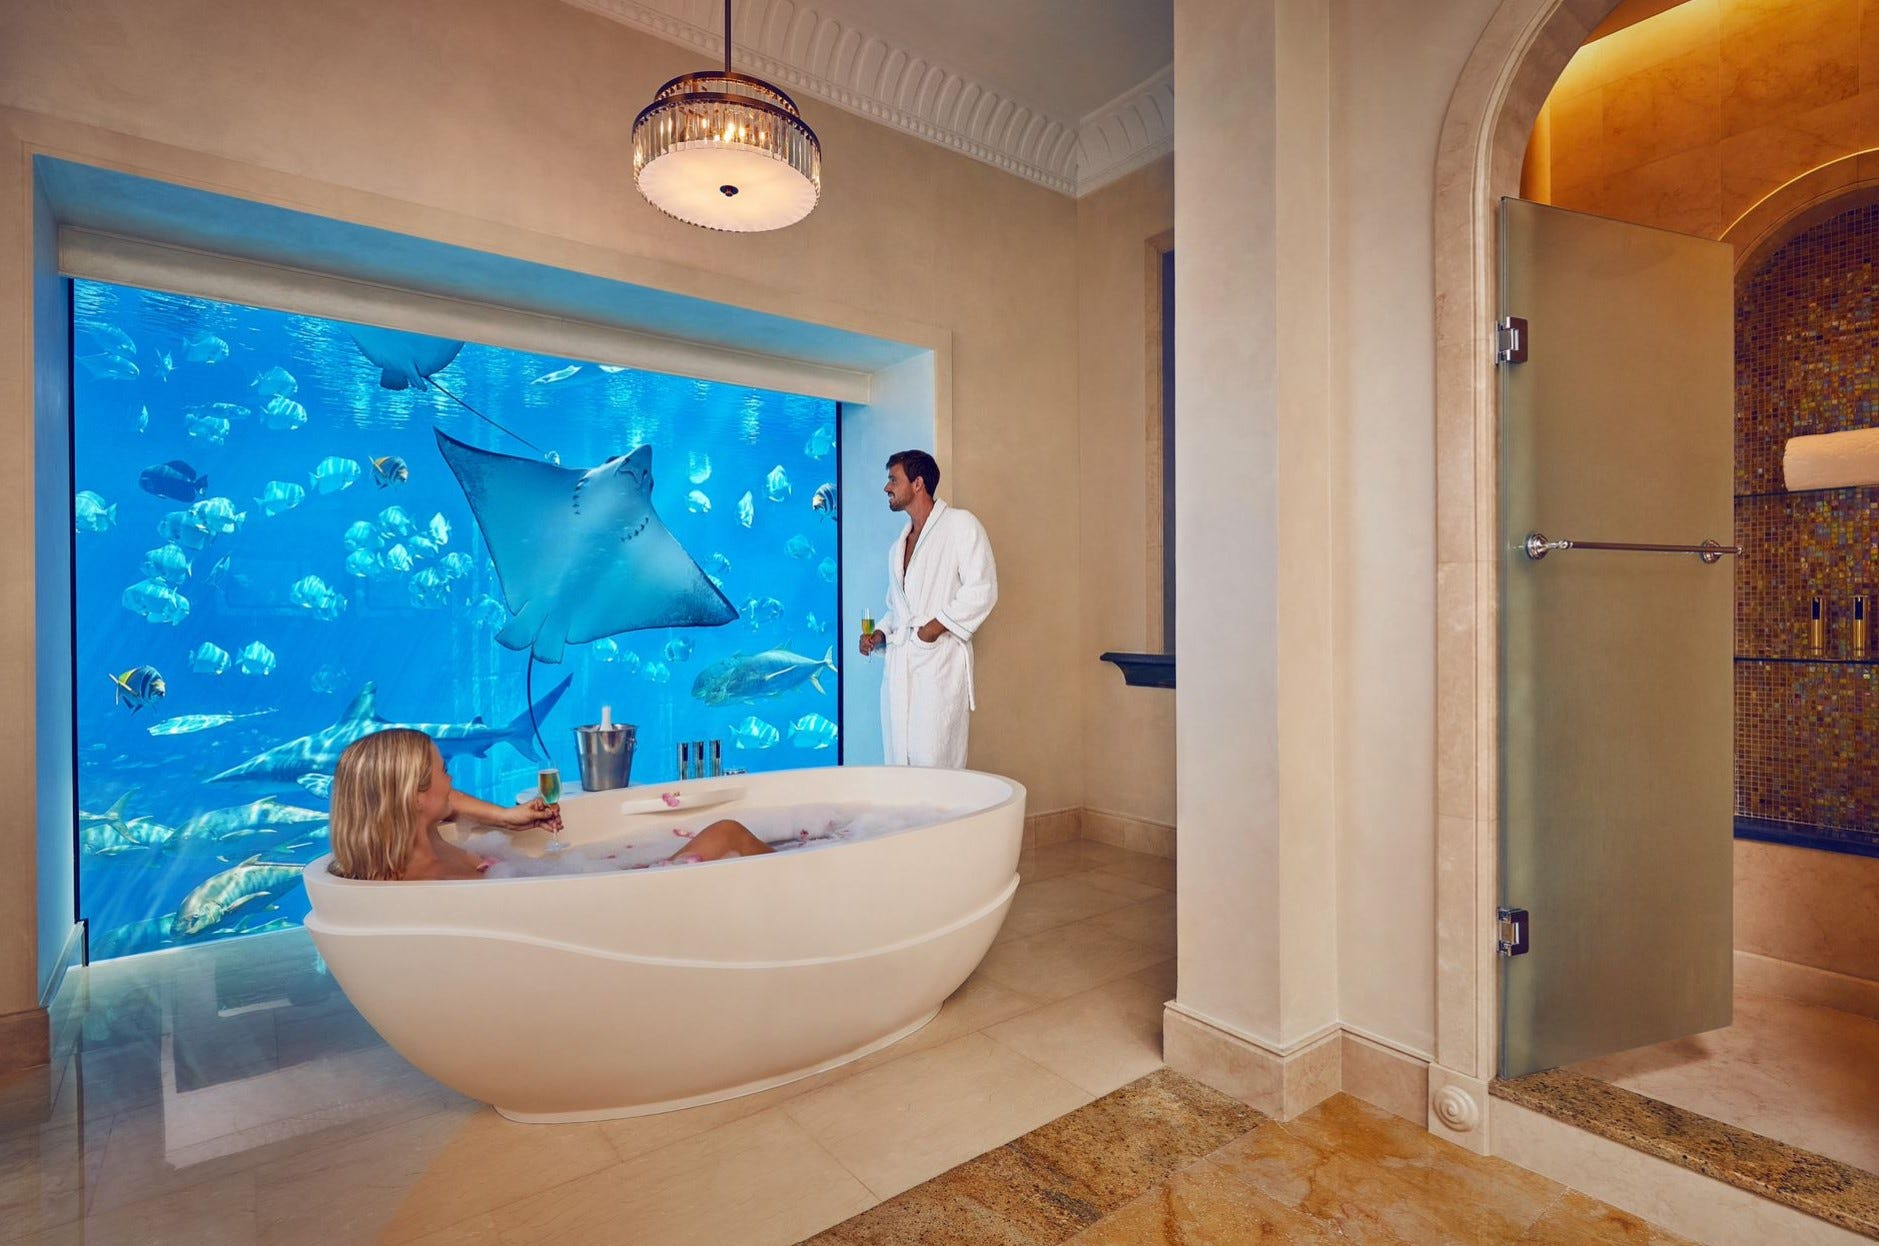 25 epic hotel bathrooms from around the world